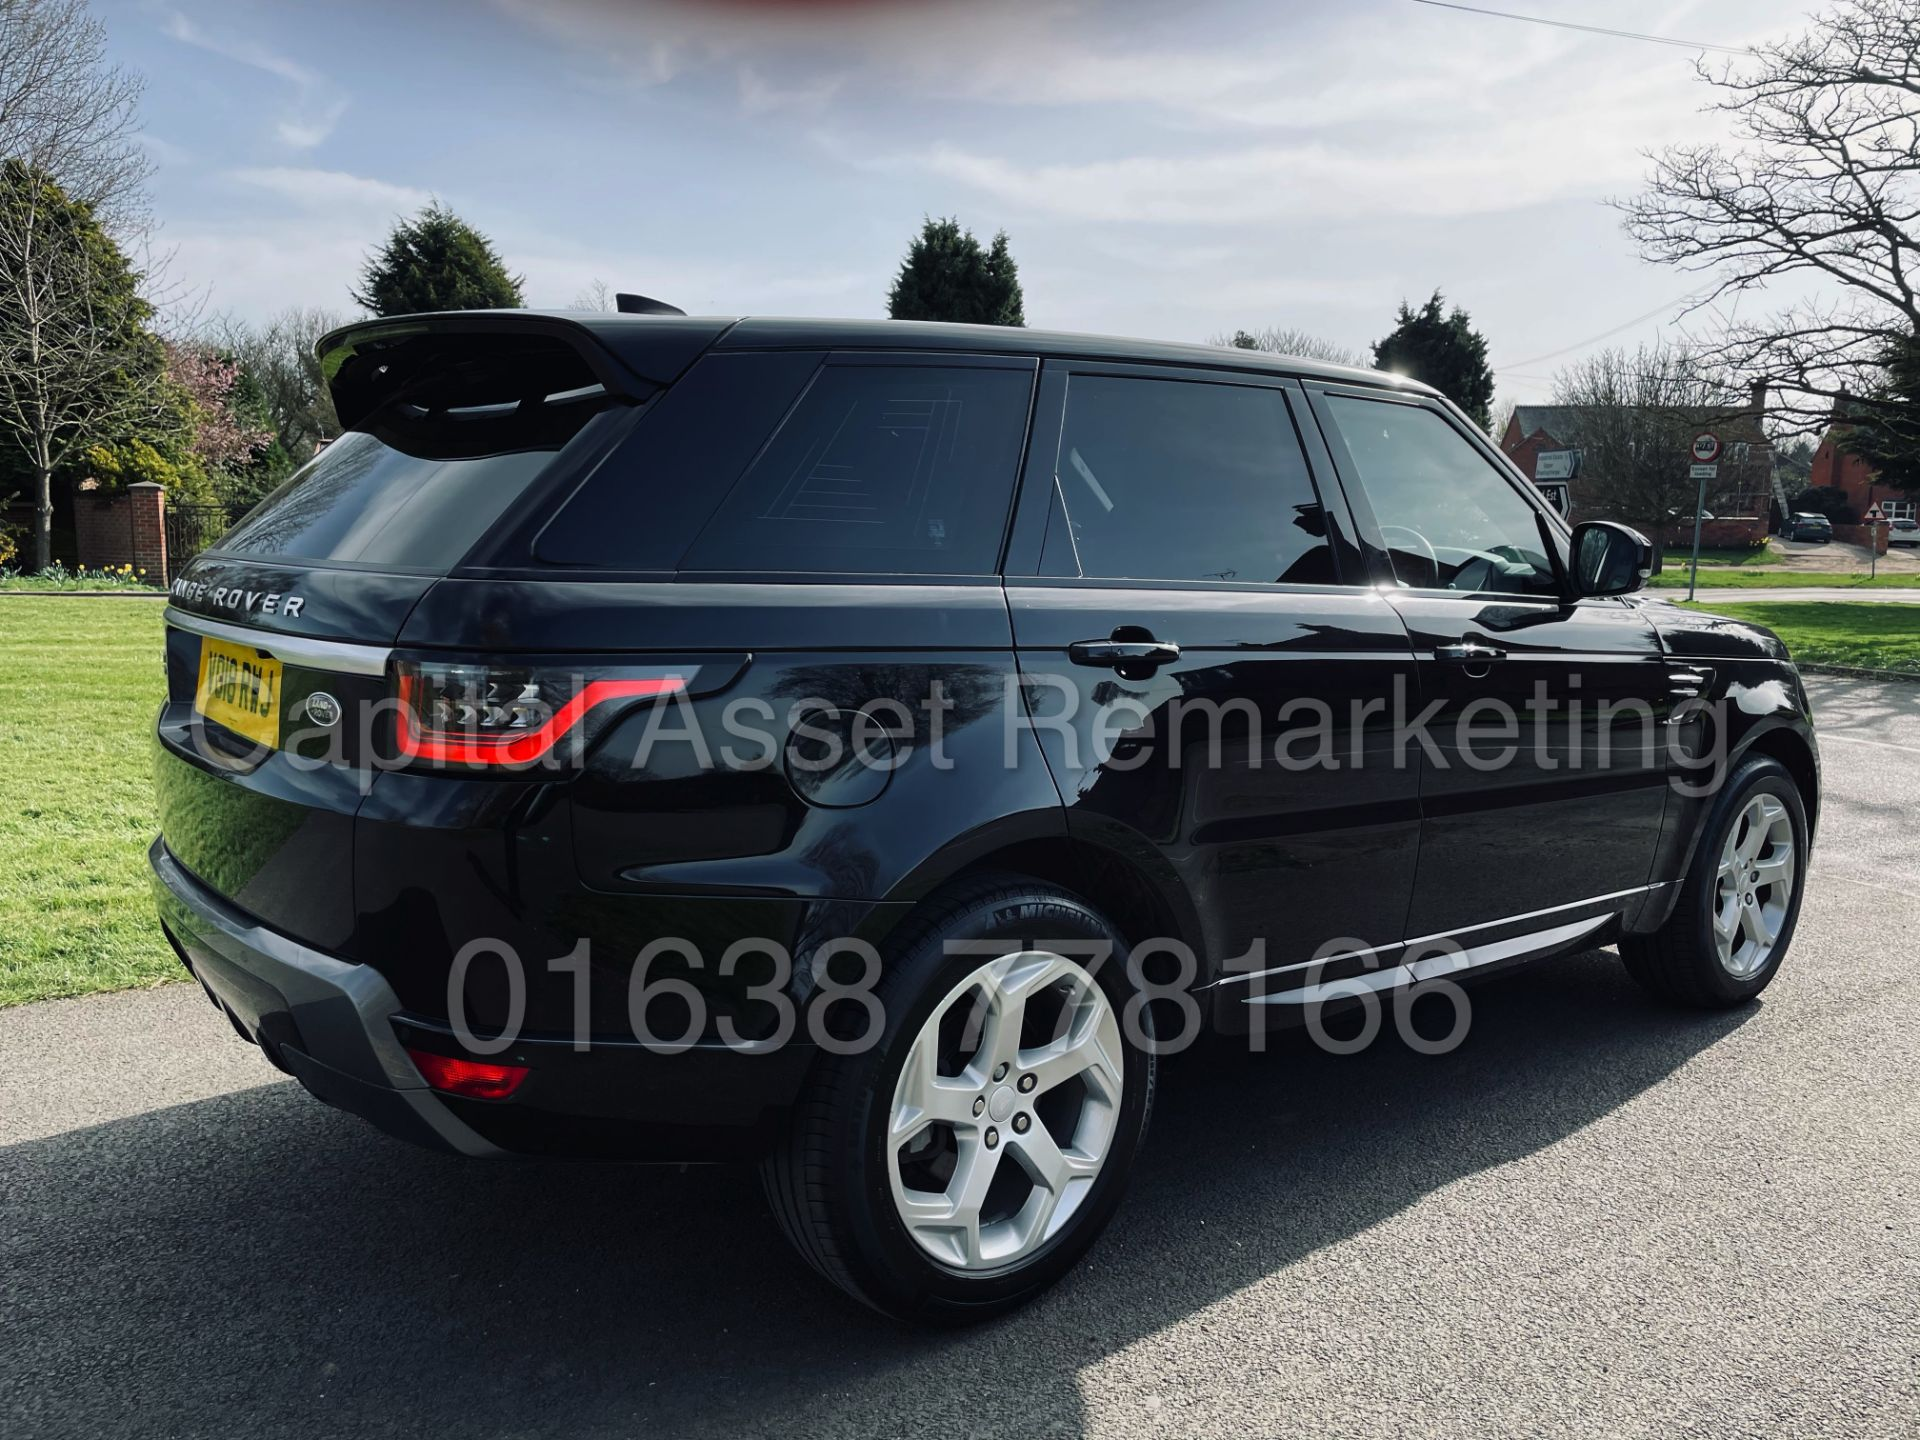 (On Sale) RANGE ROVER SPORT *HSE EDITION* SUV (2018 - NEW MODEL) '8 SPEED AUTO' *FULLY LOADED* - Image 13 of 55